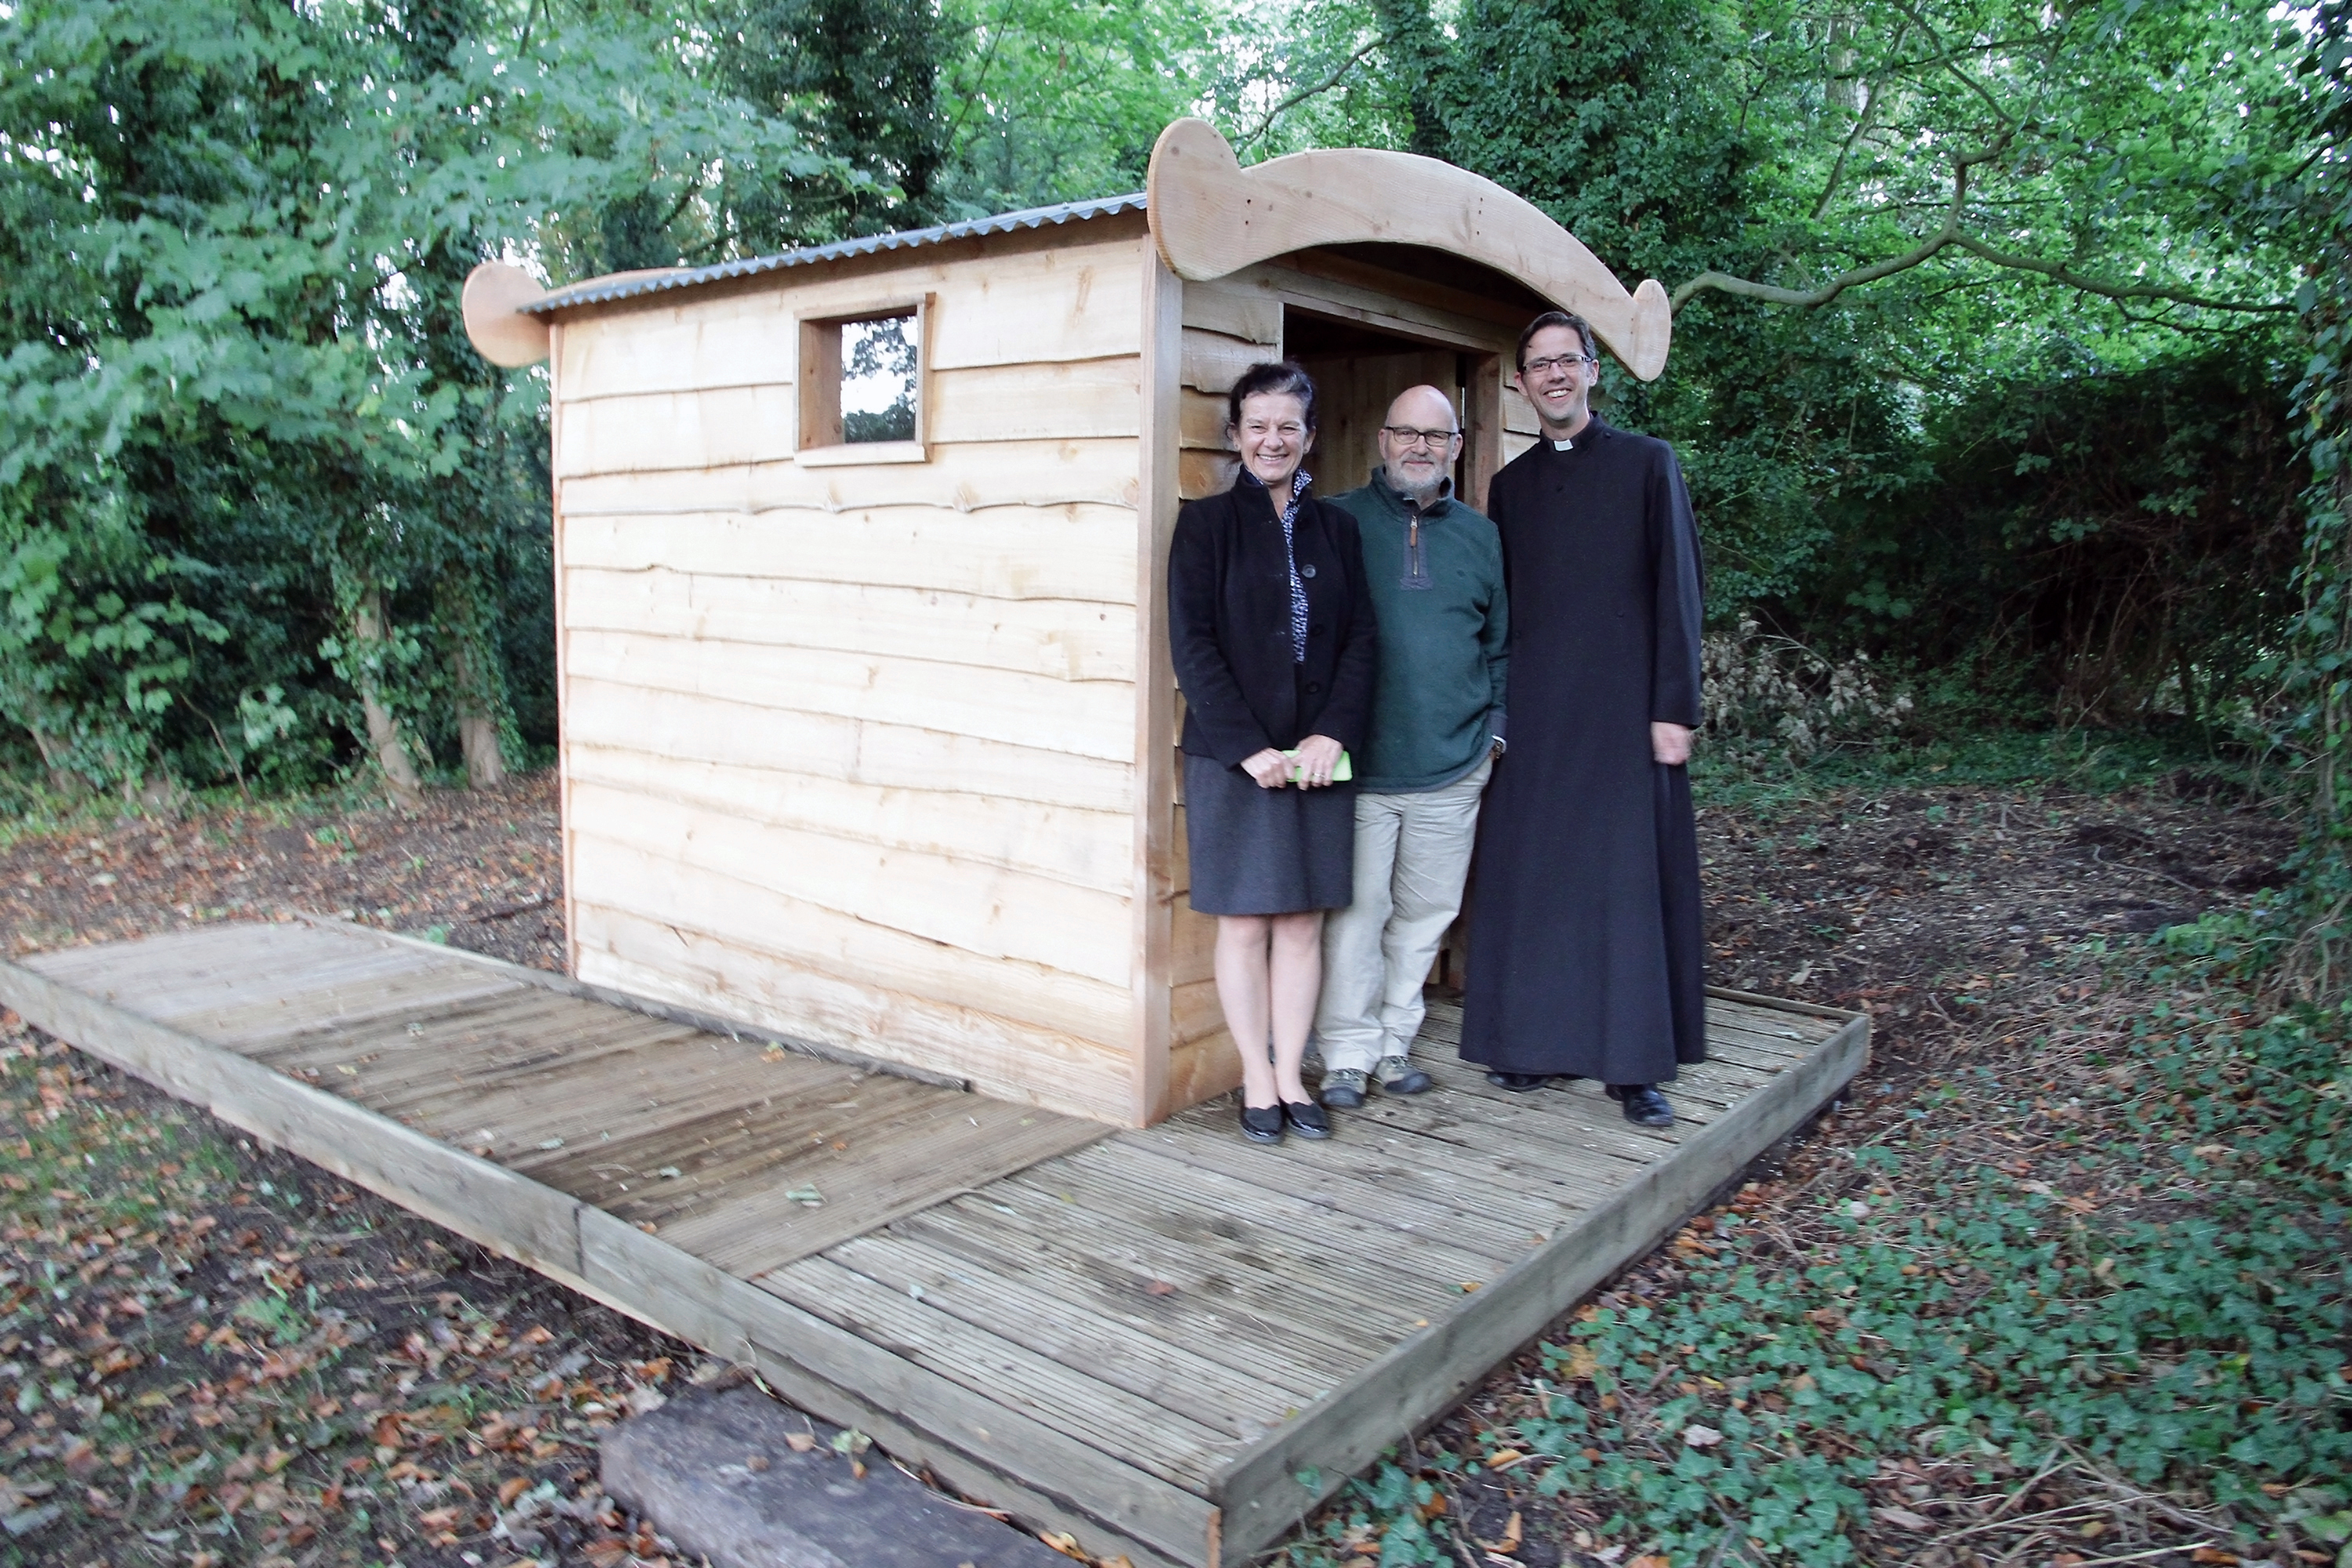 New disabled access composting toilet at Hatley St George Church